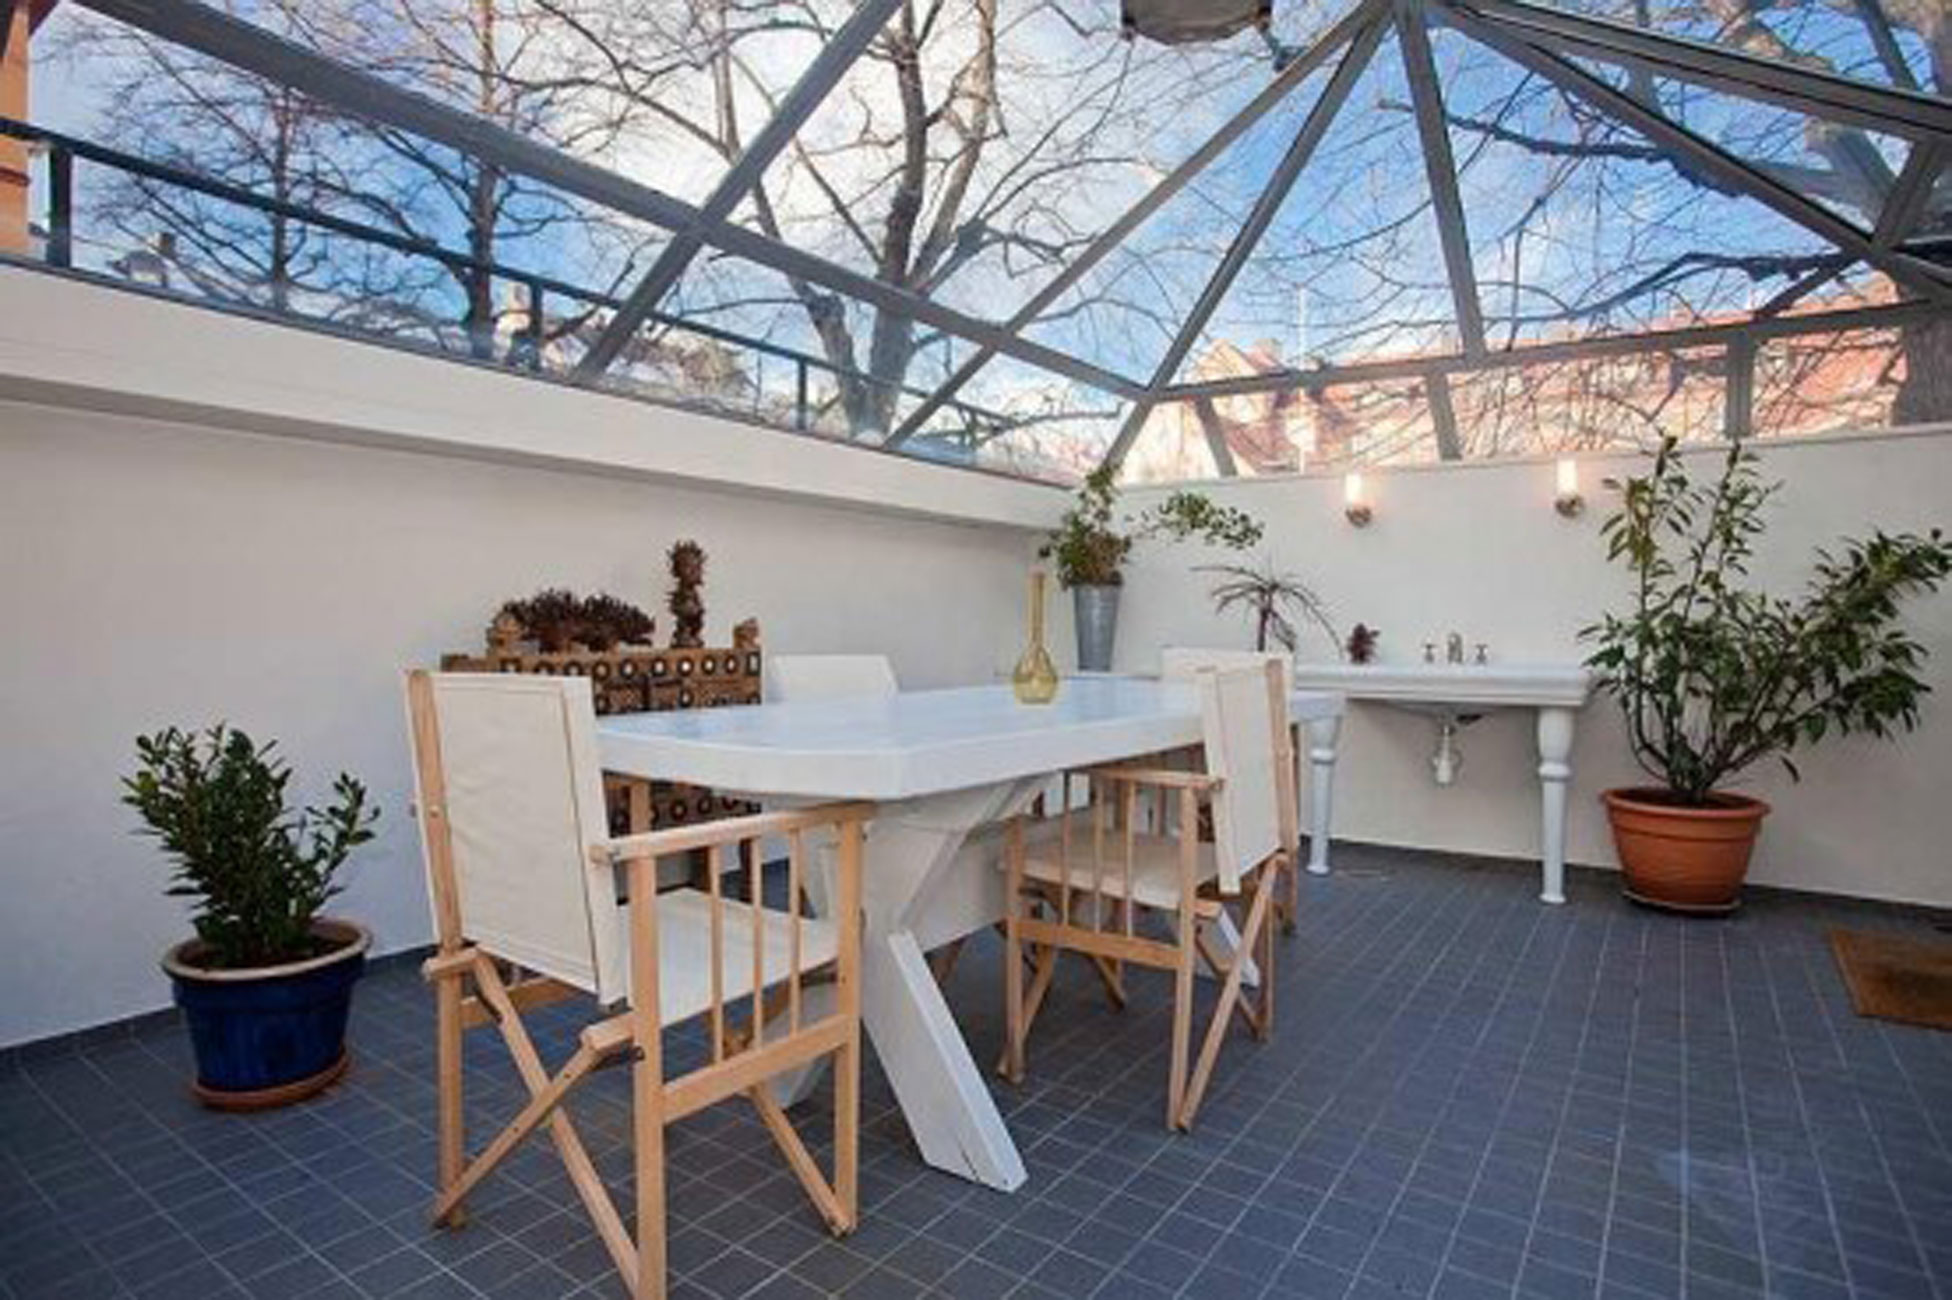 Luxury Studio Apartment Ideas From A Renovated Cinema Roof